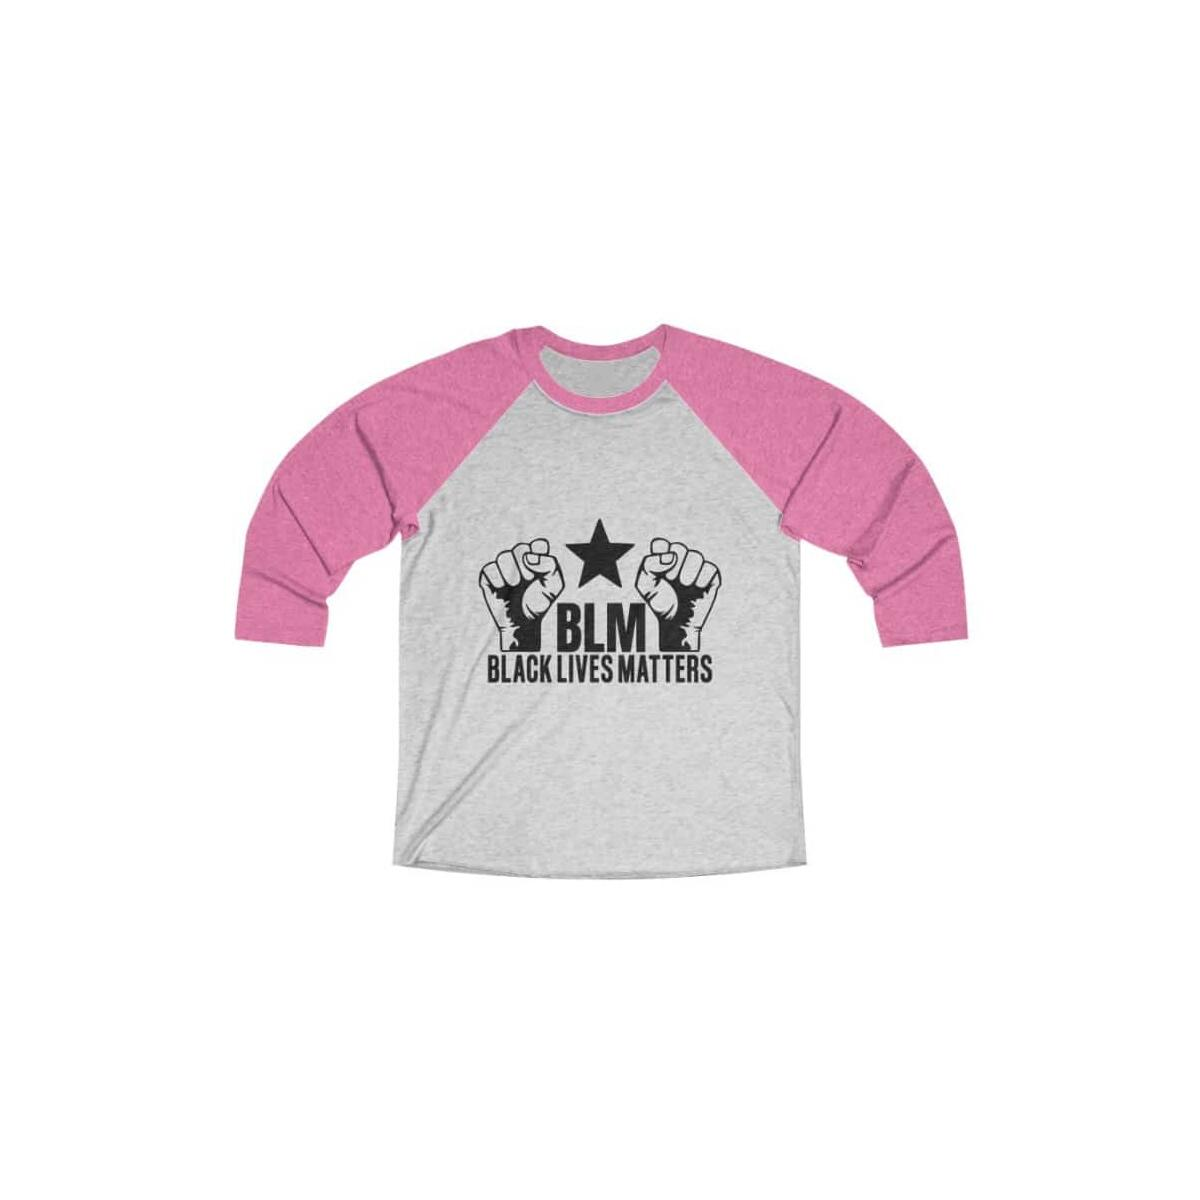 Afrocentric BLM Tri-Blend Raglan Tee, Vintage Pink / Heather White / 2XL